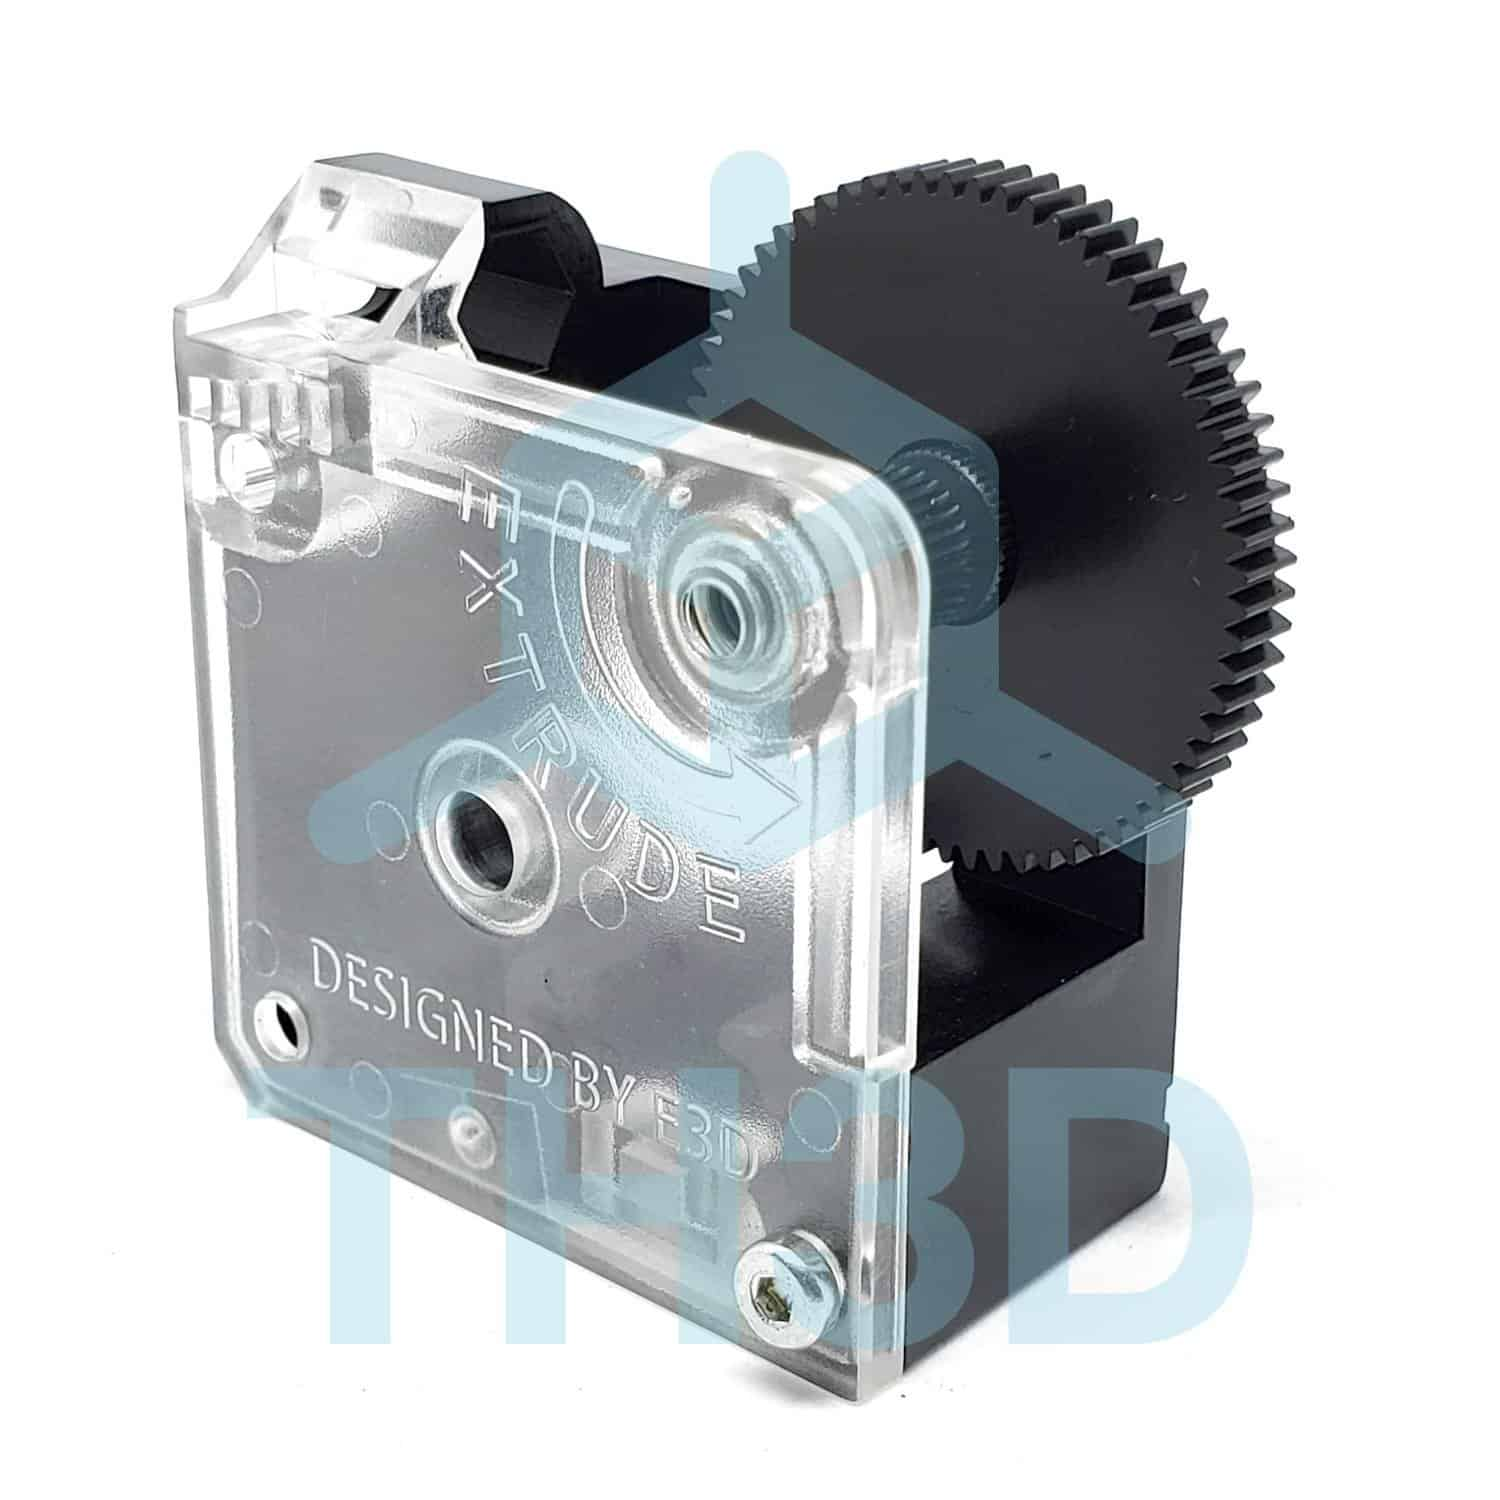 Tough Extruder - 3:1 Gearing, Bowden OR Direct 1 75mm